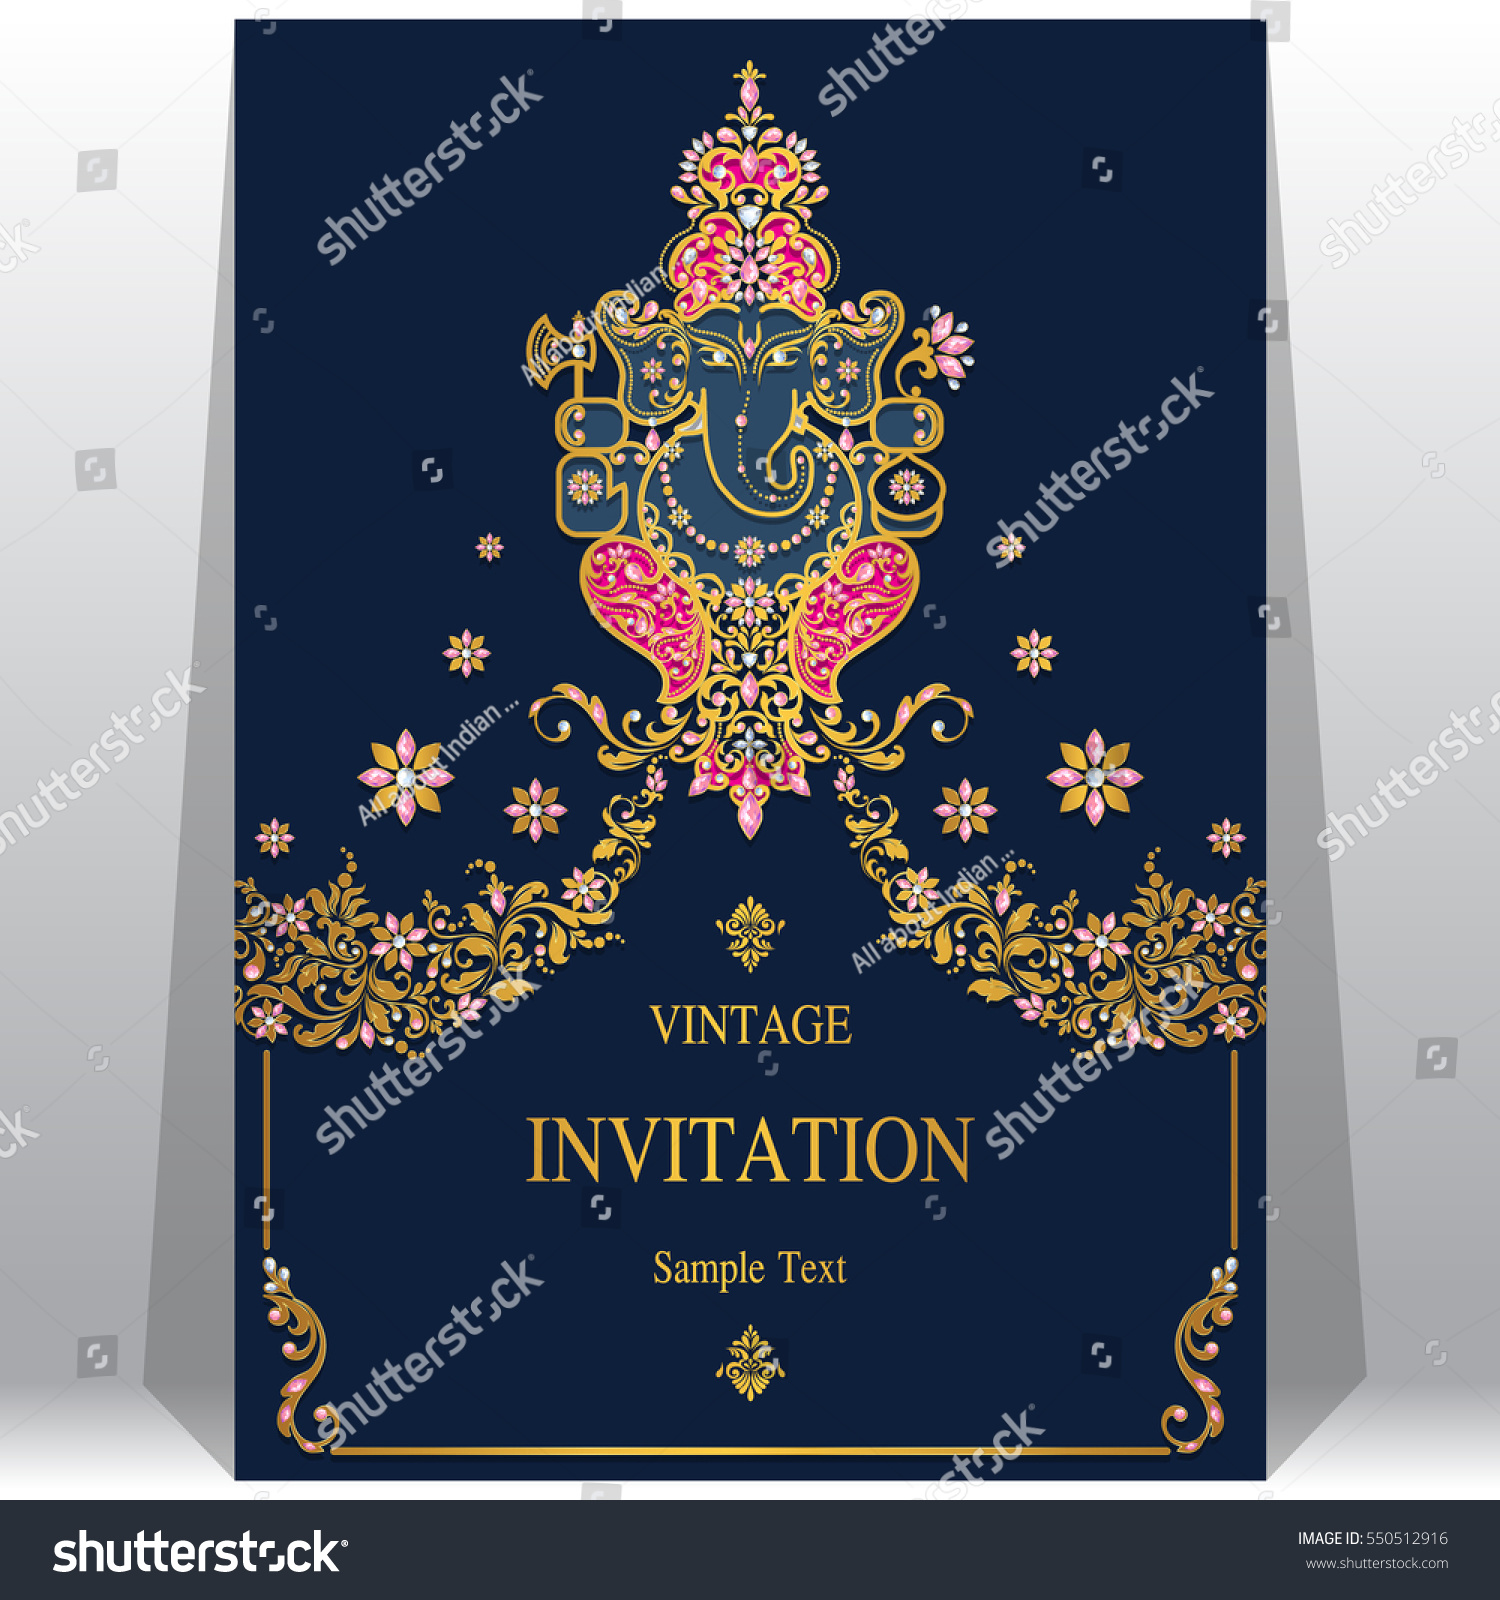 Indian Wedding Invitation Card Templates Gold Stock Vector Royalty Free 550512916